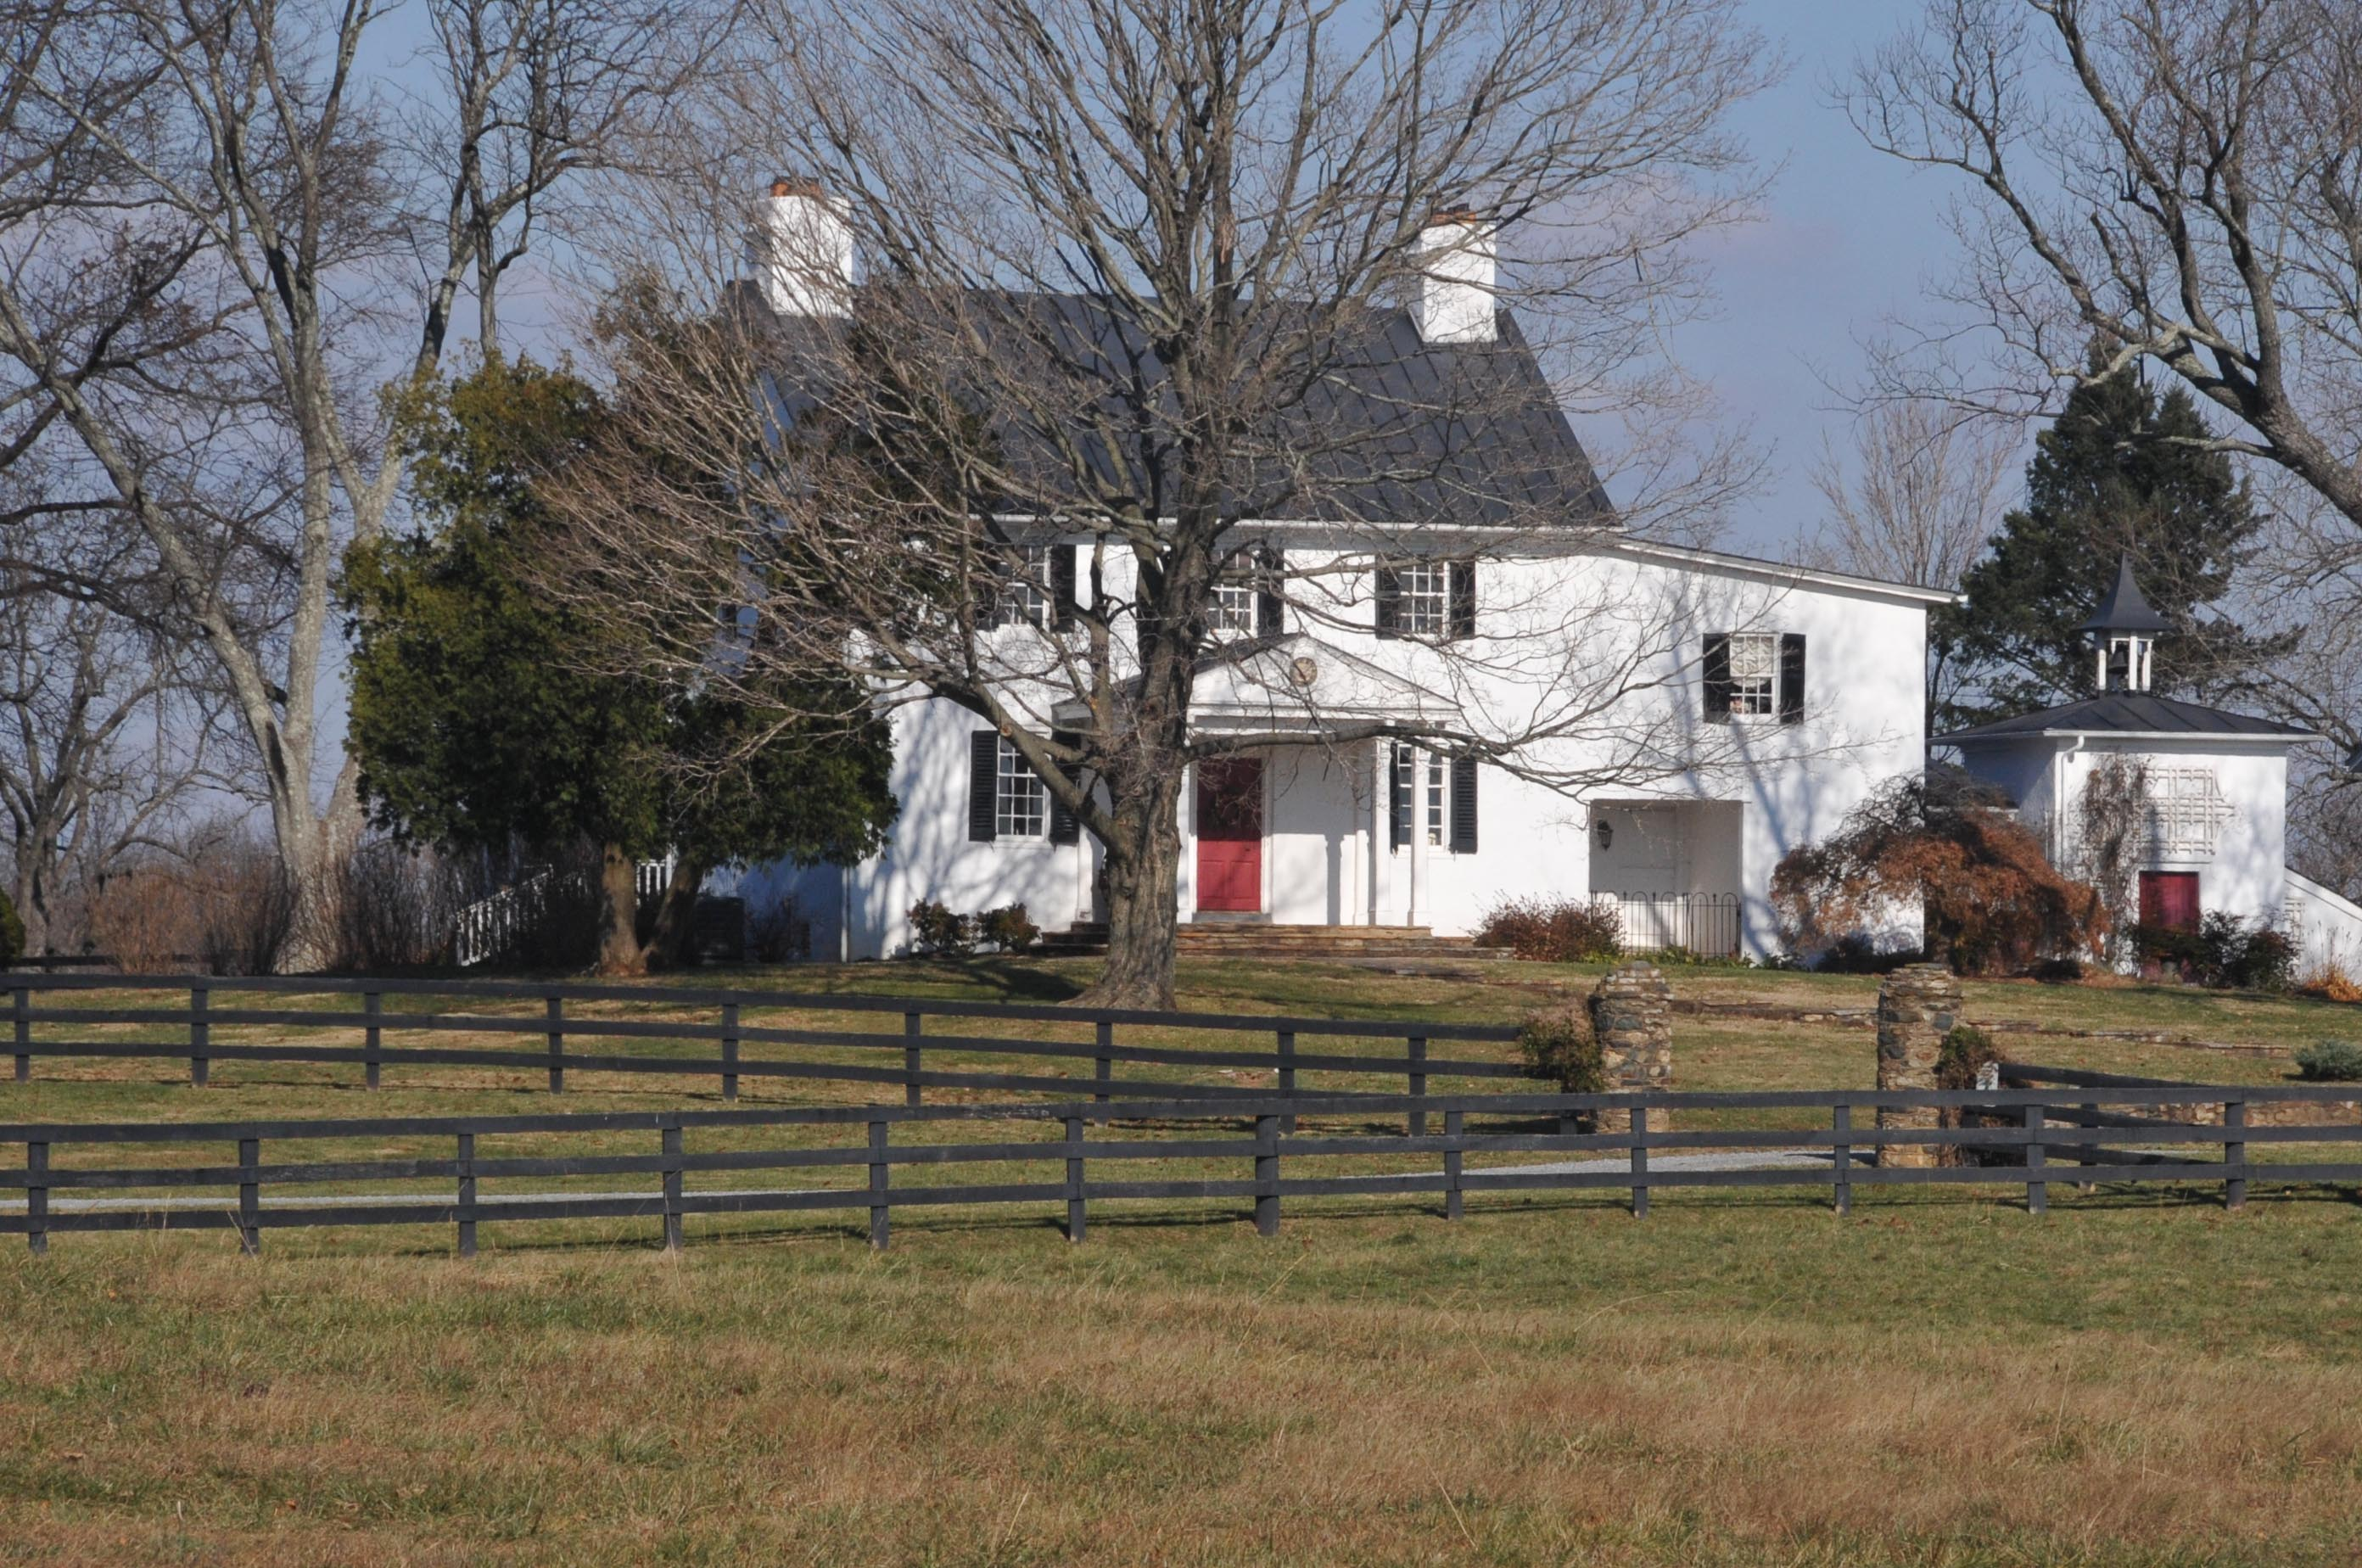 The farm house in 2007 ((By Jerrye & Roy Klotz, MD (Own work) [CC BY-SA 3.0 (http://creativecommons.org/licenses/by-sa/3.0)], via Wikimedia Commons))